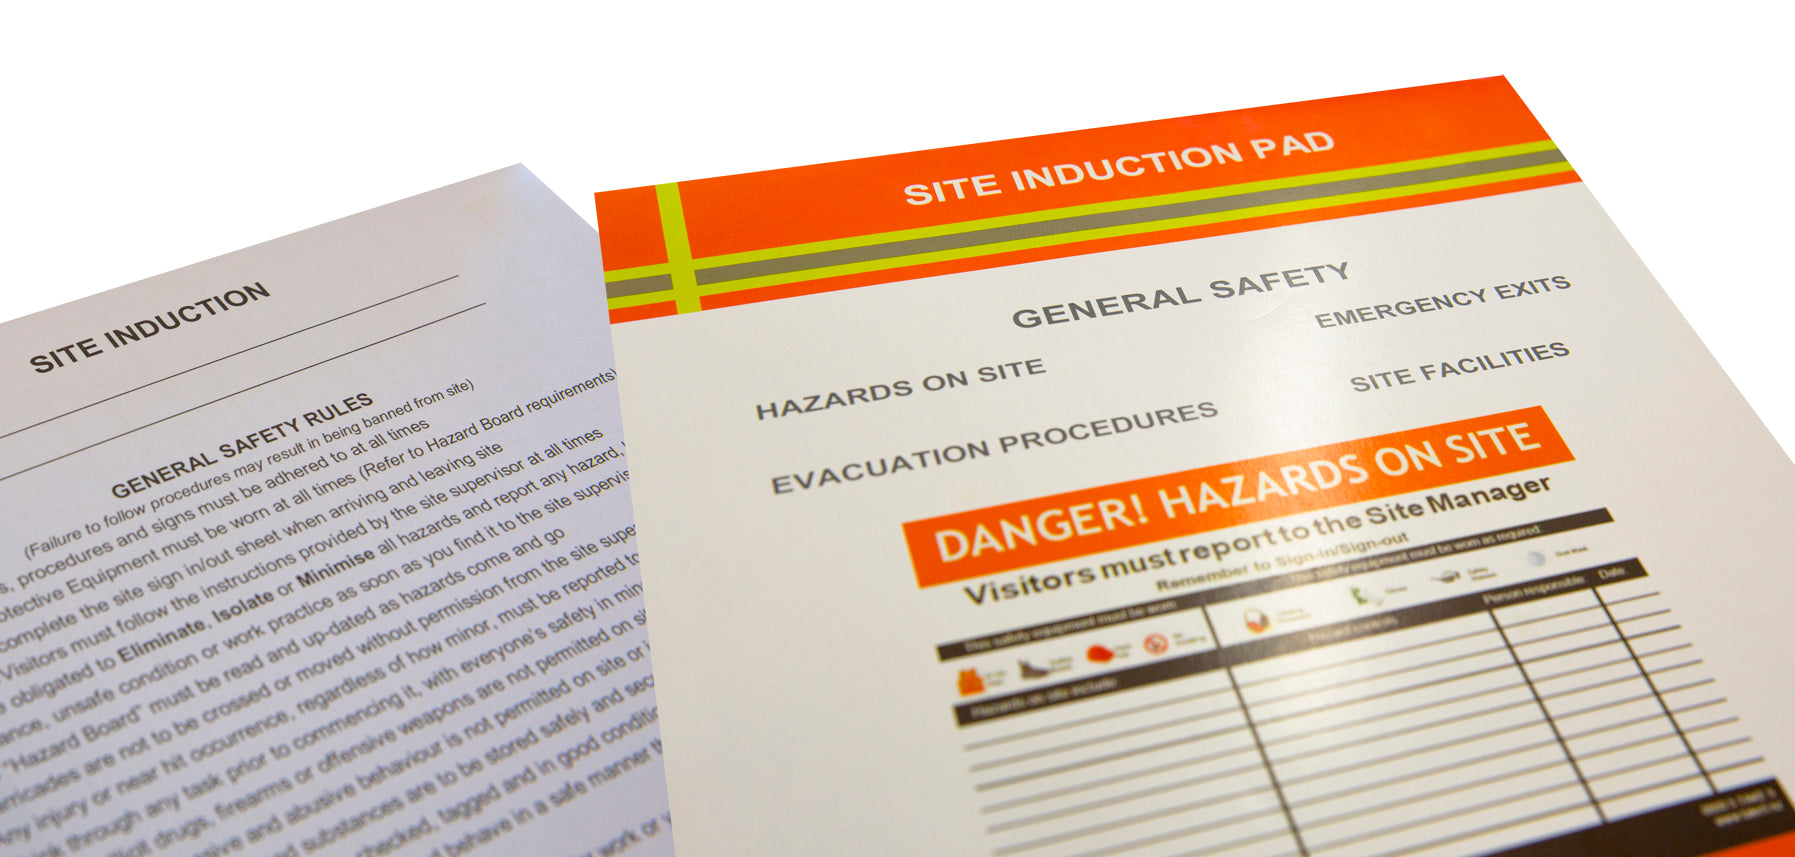 Site Induction Pad